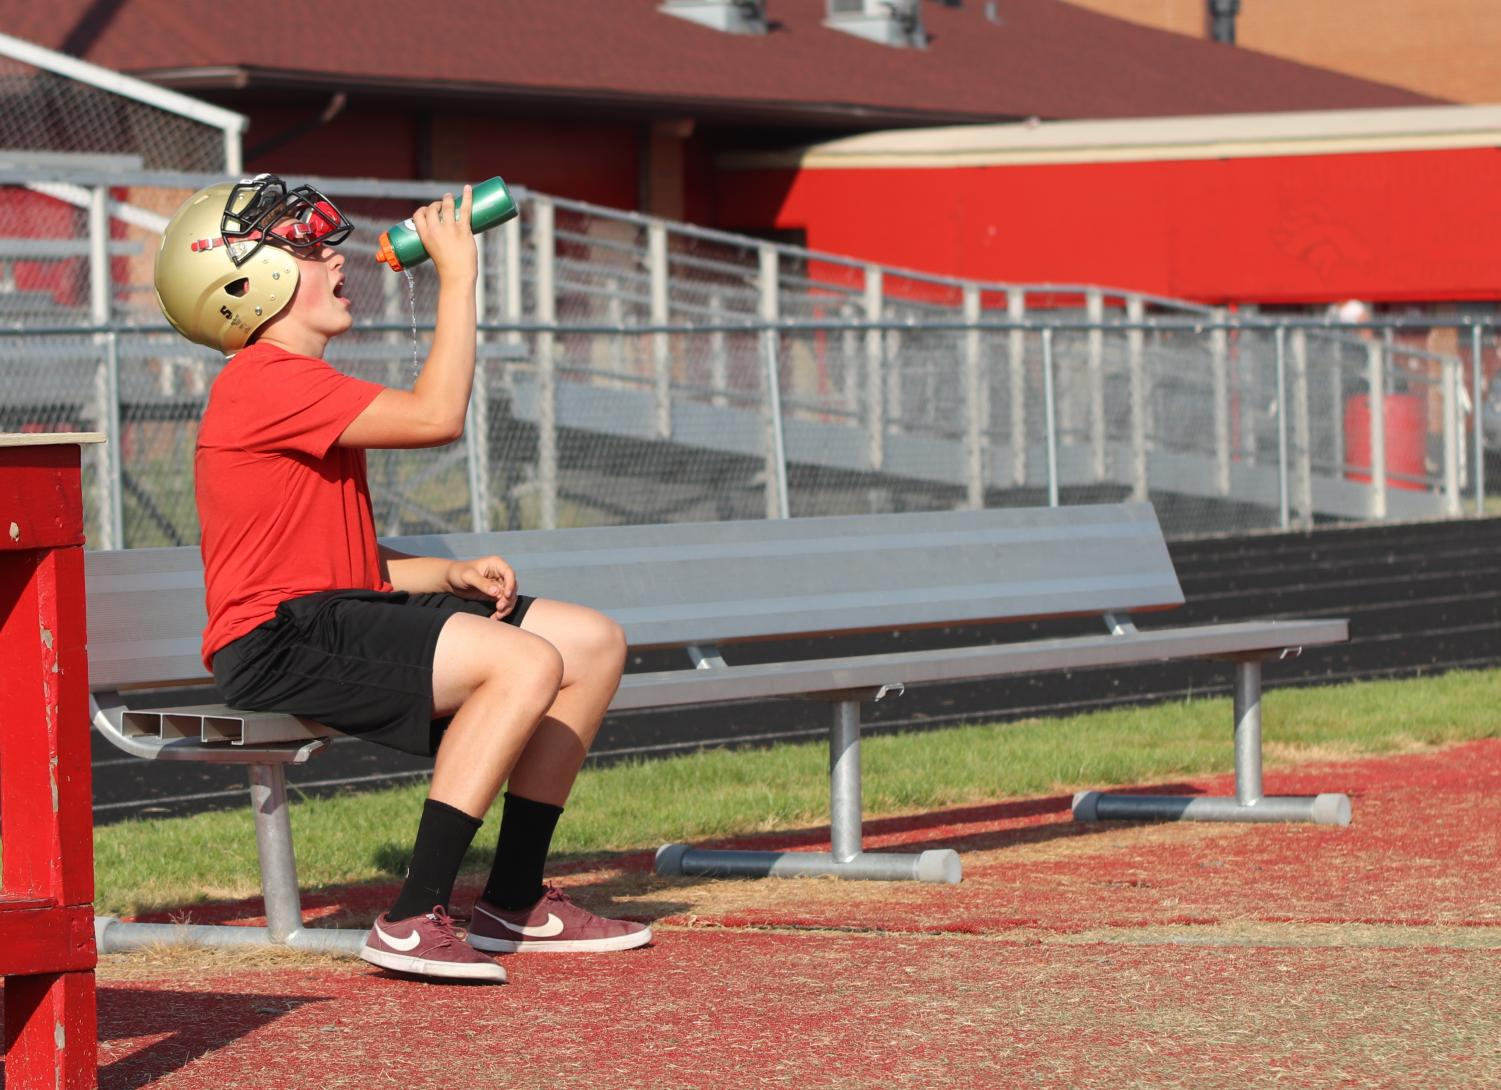 After a two hour practice, sophomore Ethan Taipalus takes a water break. The football coaches have stressed the idea of proper hydration this season due to dehydration issues in the past.